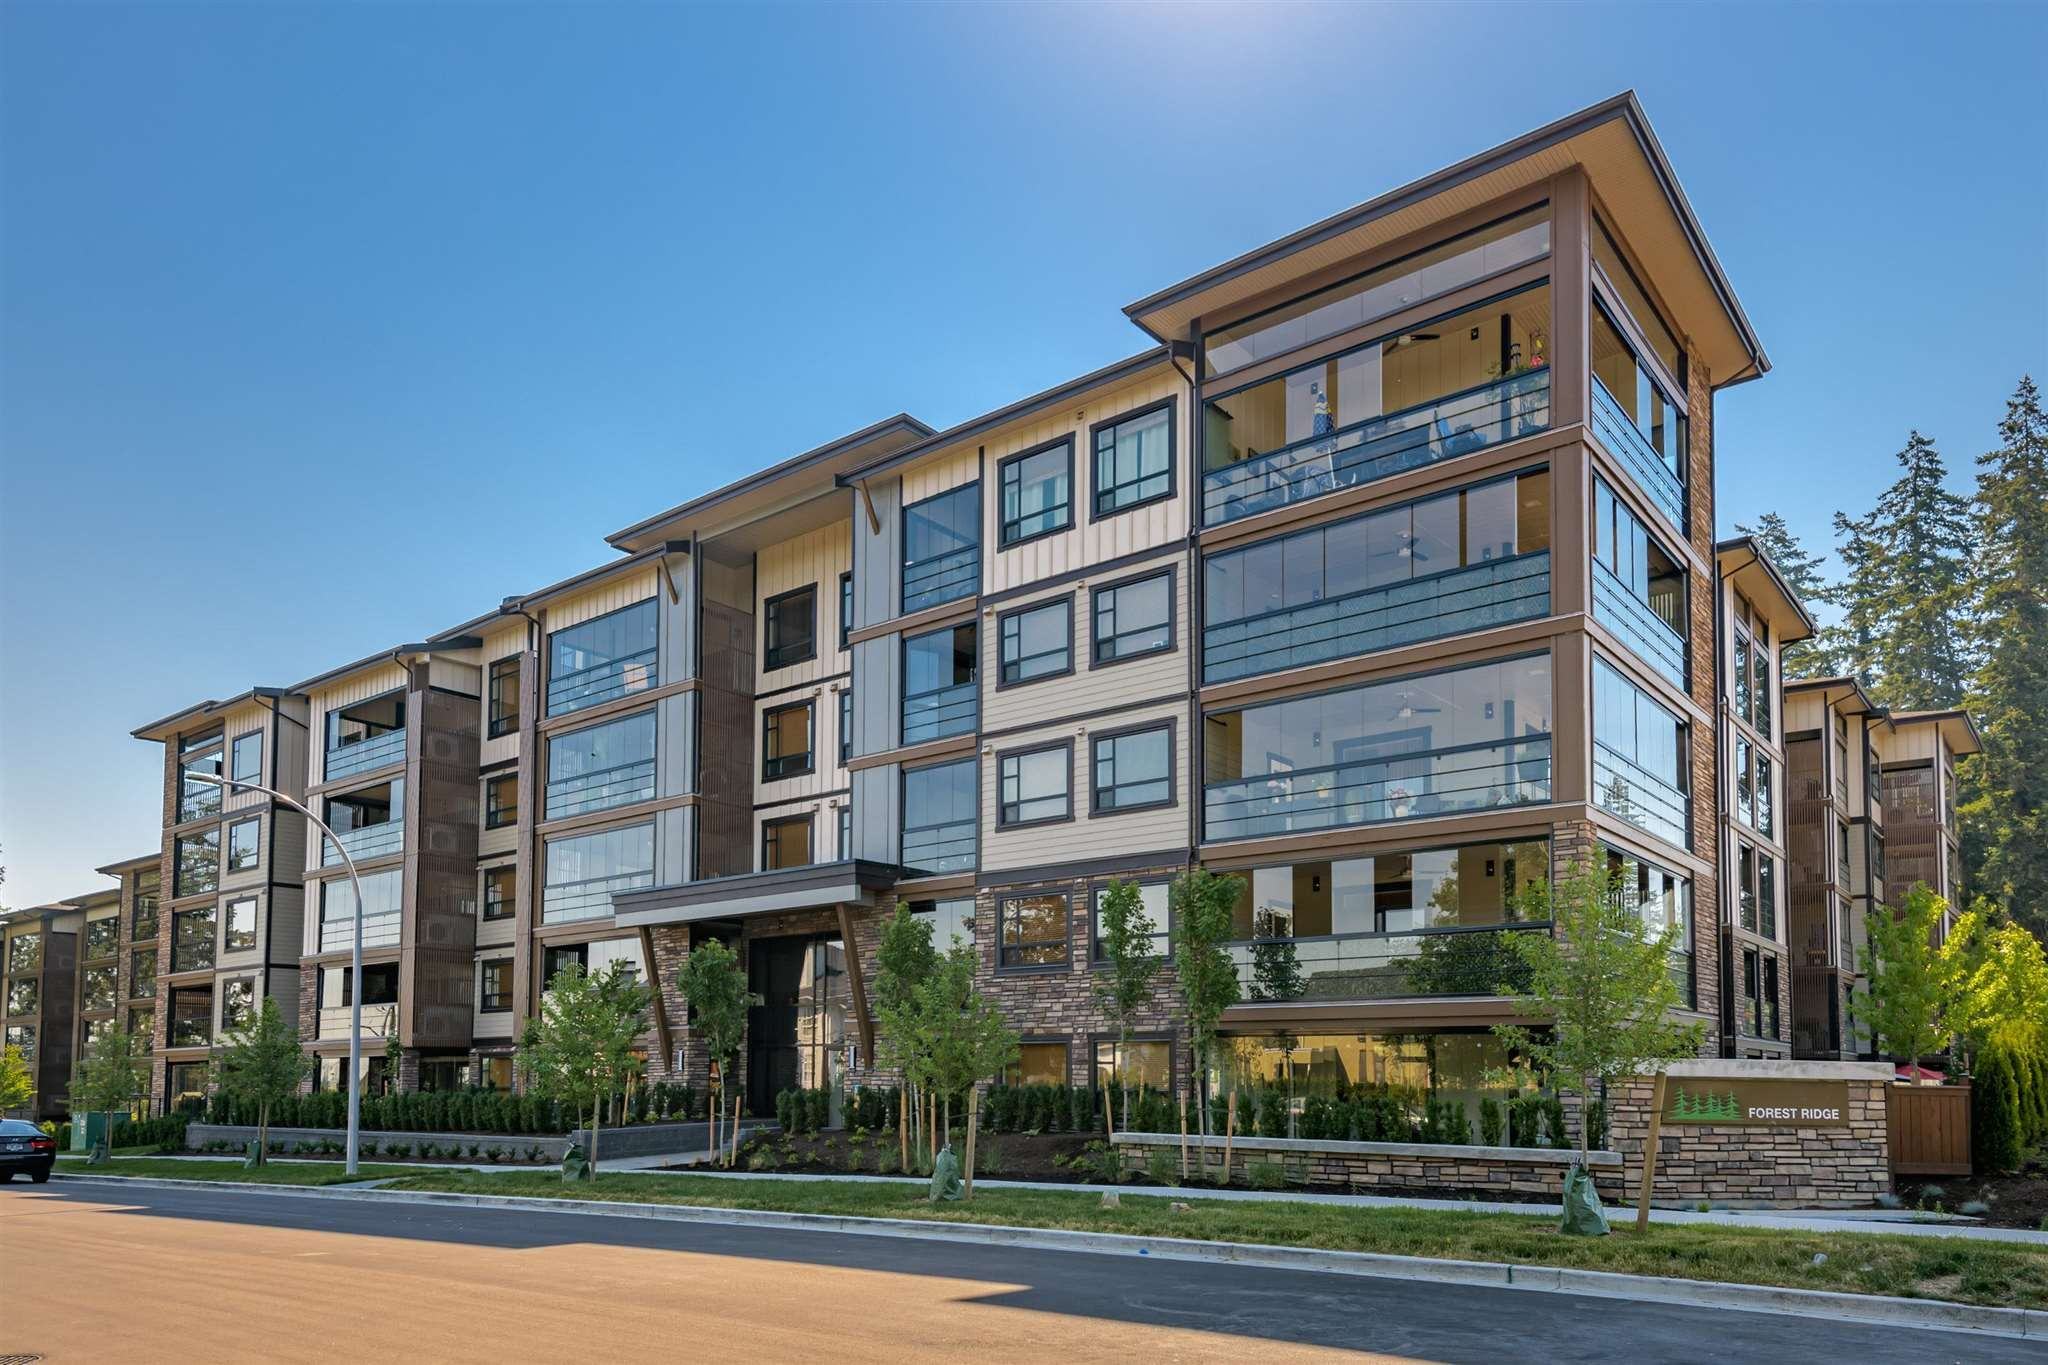 """Main Photo: 306 14588 MCDOUGALL Drive in Surrey: King George Corridor Condo for sale in """"Forest Ridge"""" (South Surrey White Rock)  : MLS®# R2596769"""